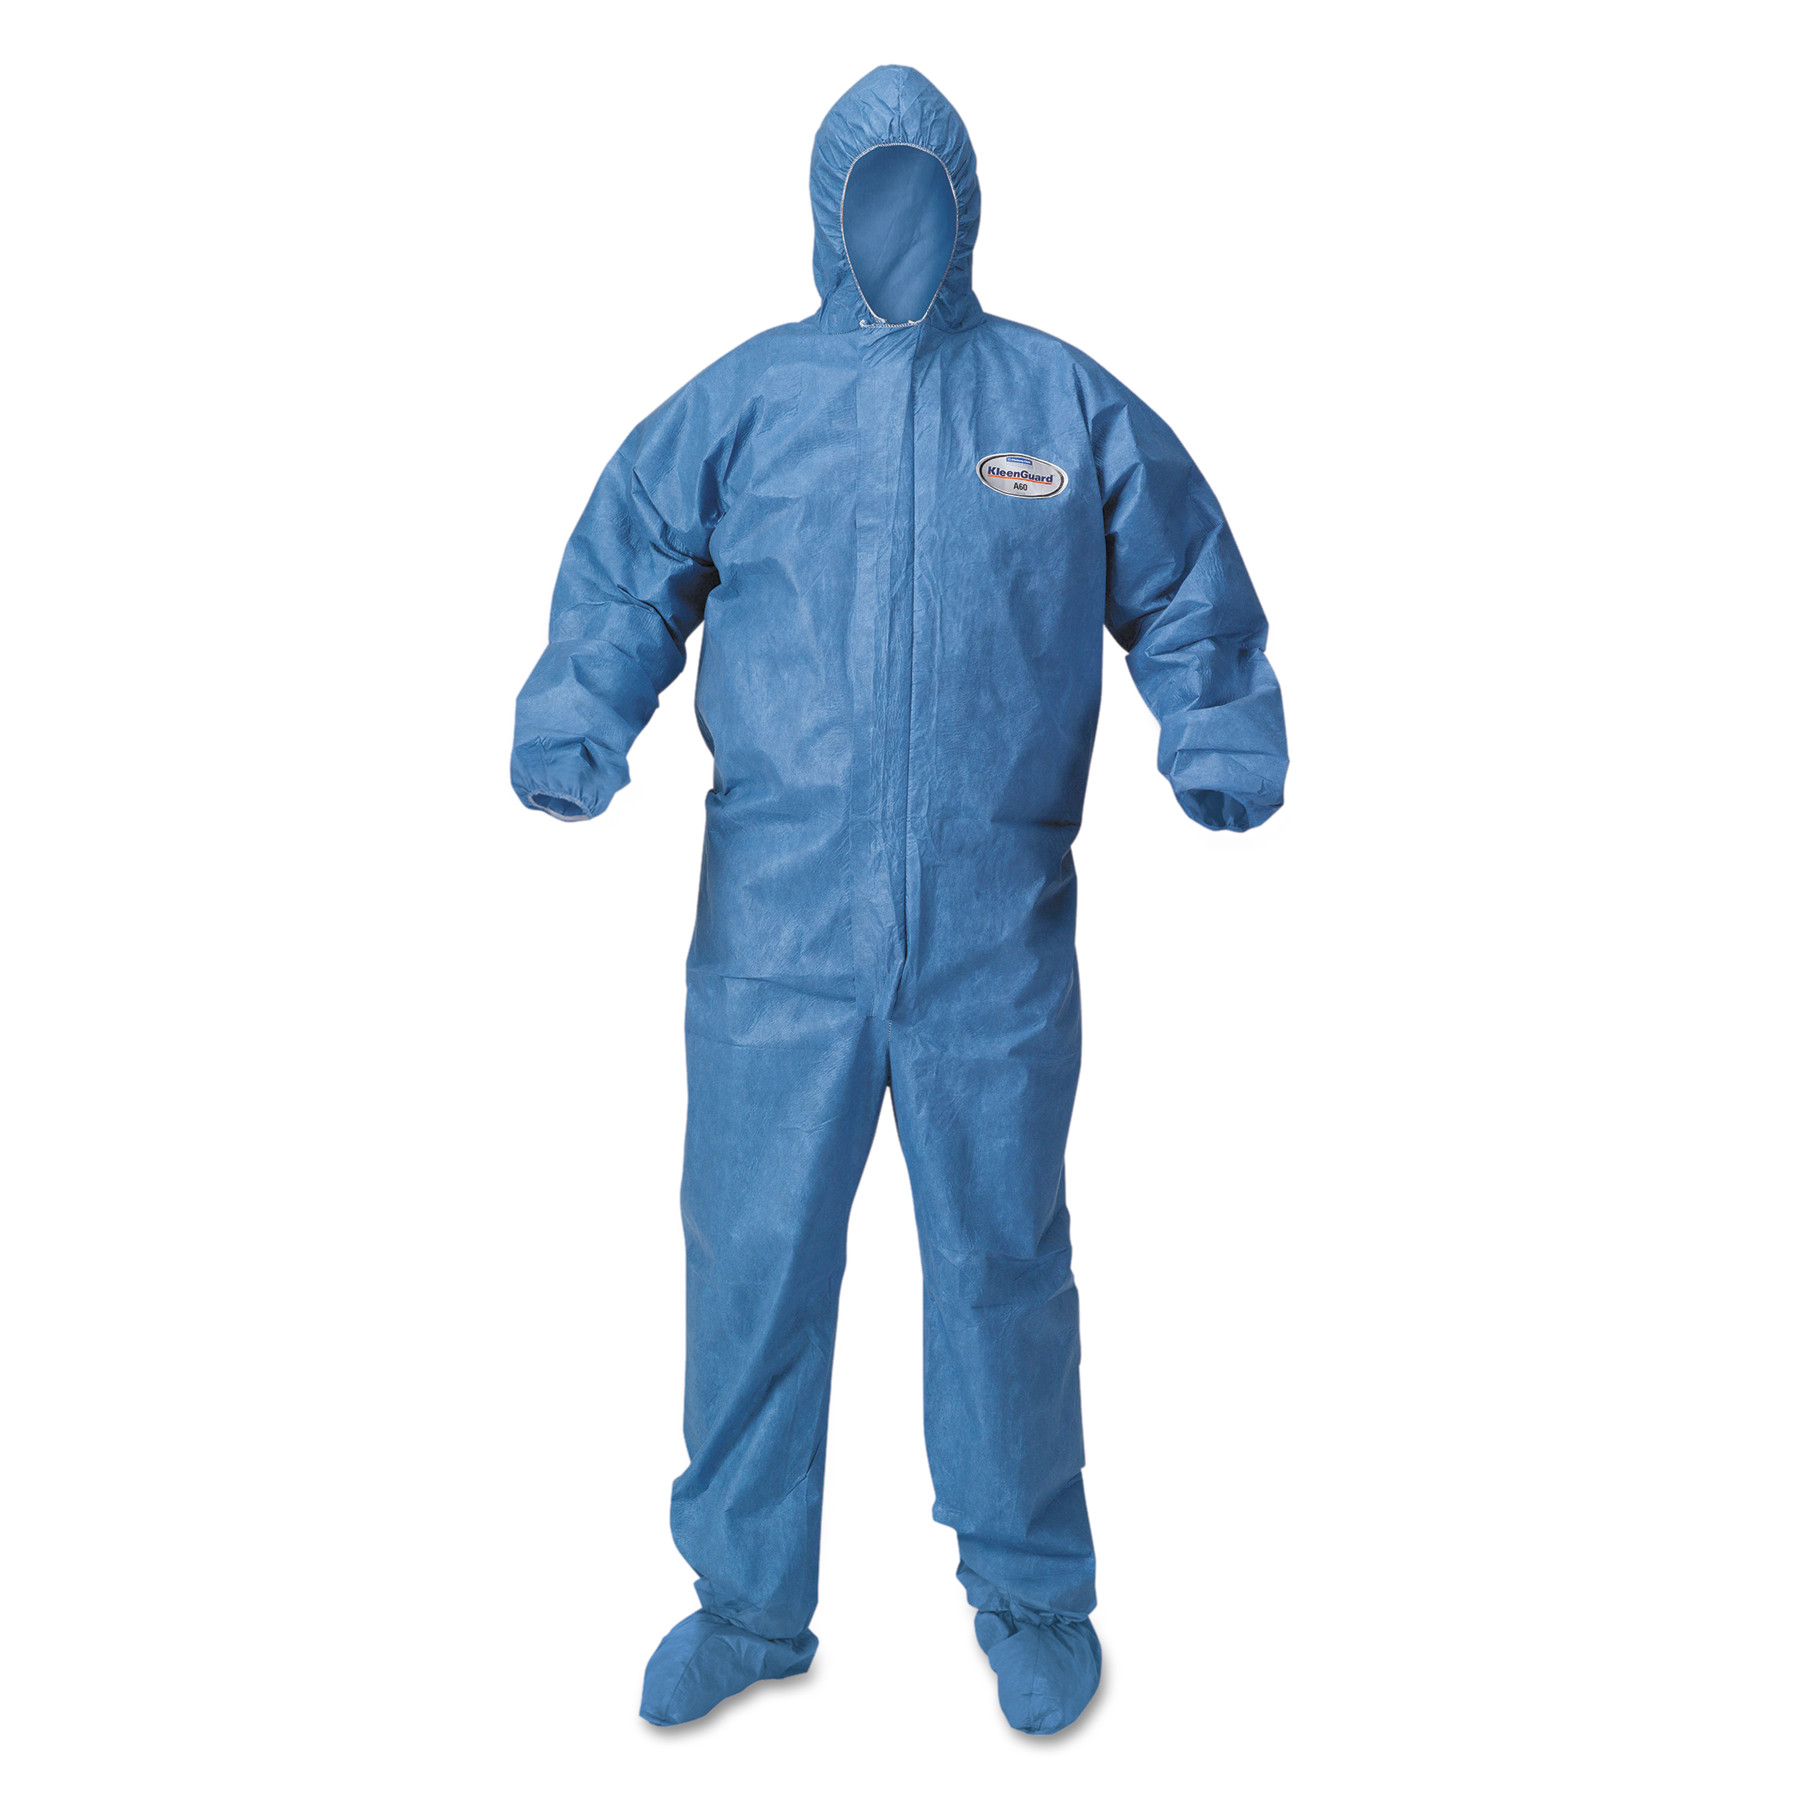 KleenGuard A60 Blood and Chemical Splash Protection Coveralls, X-Large, Blue, 24 Per... by Kimberly Clark